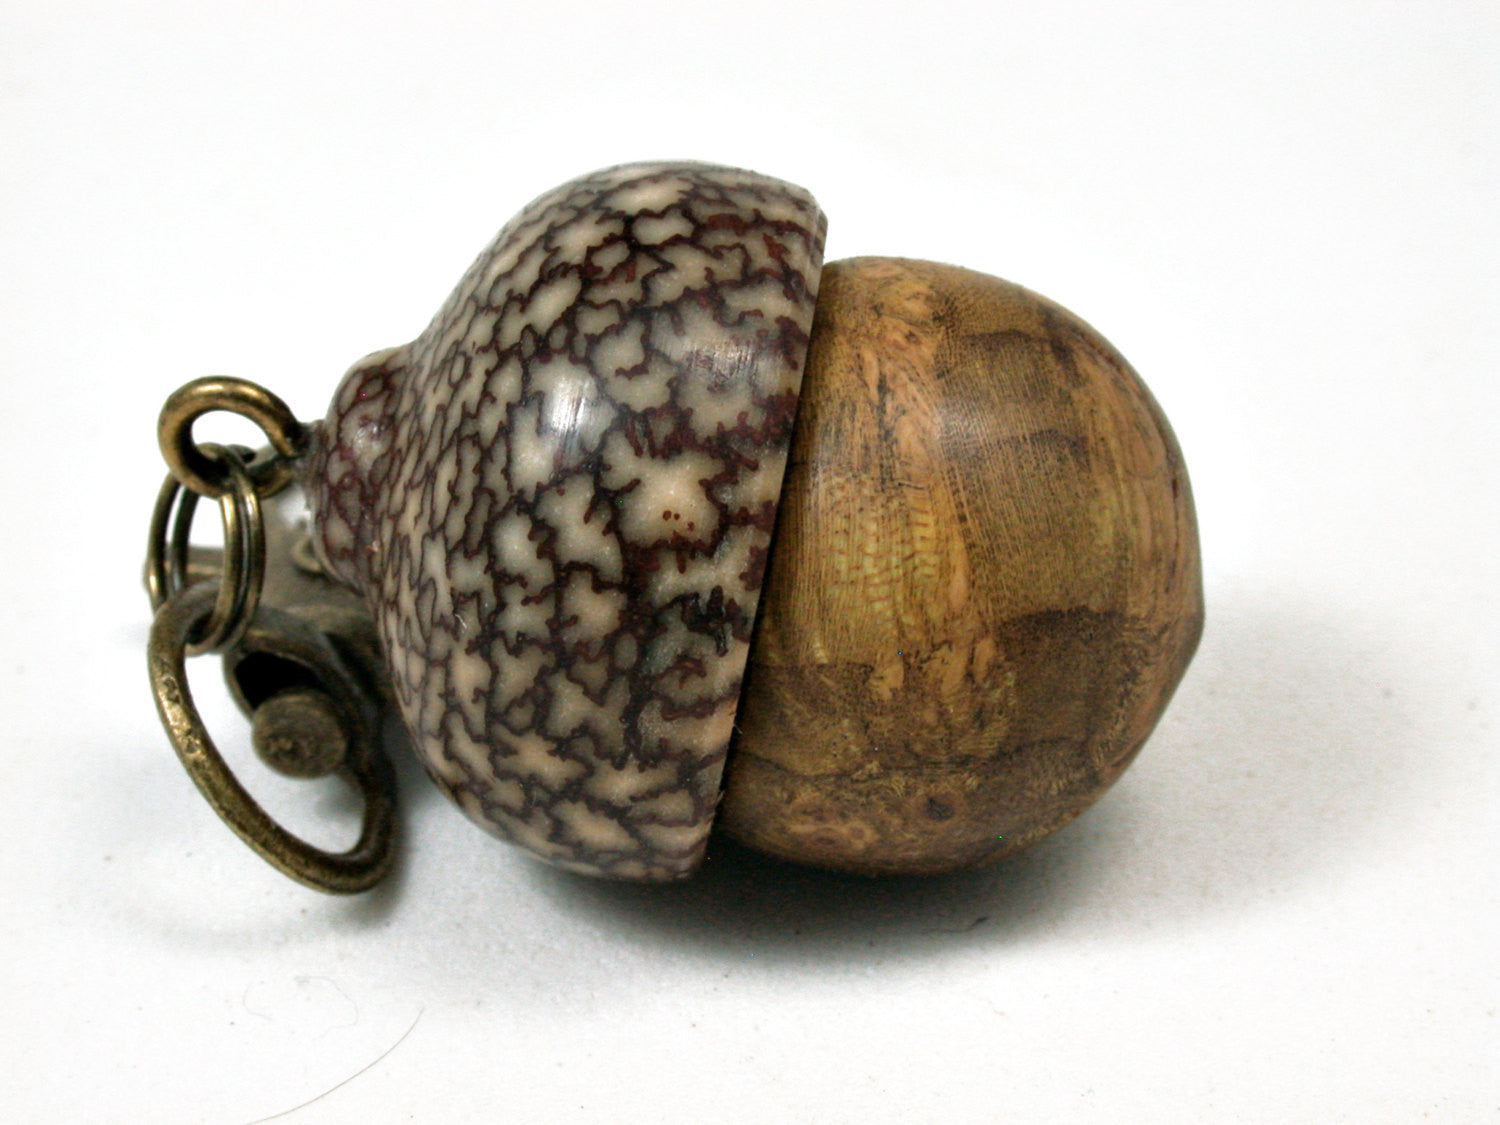 LV-2207 Redbud Burl & Betelnut Acorn Pendant Box, Charm, Pill Holder-SCREW CAP